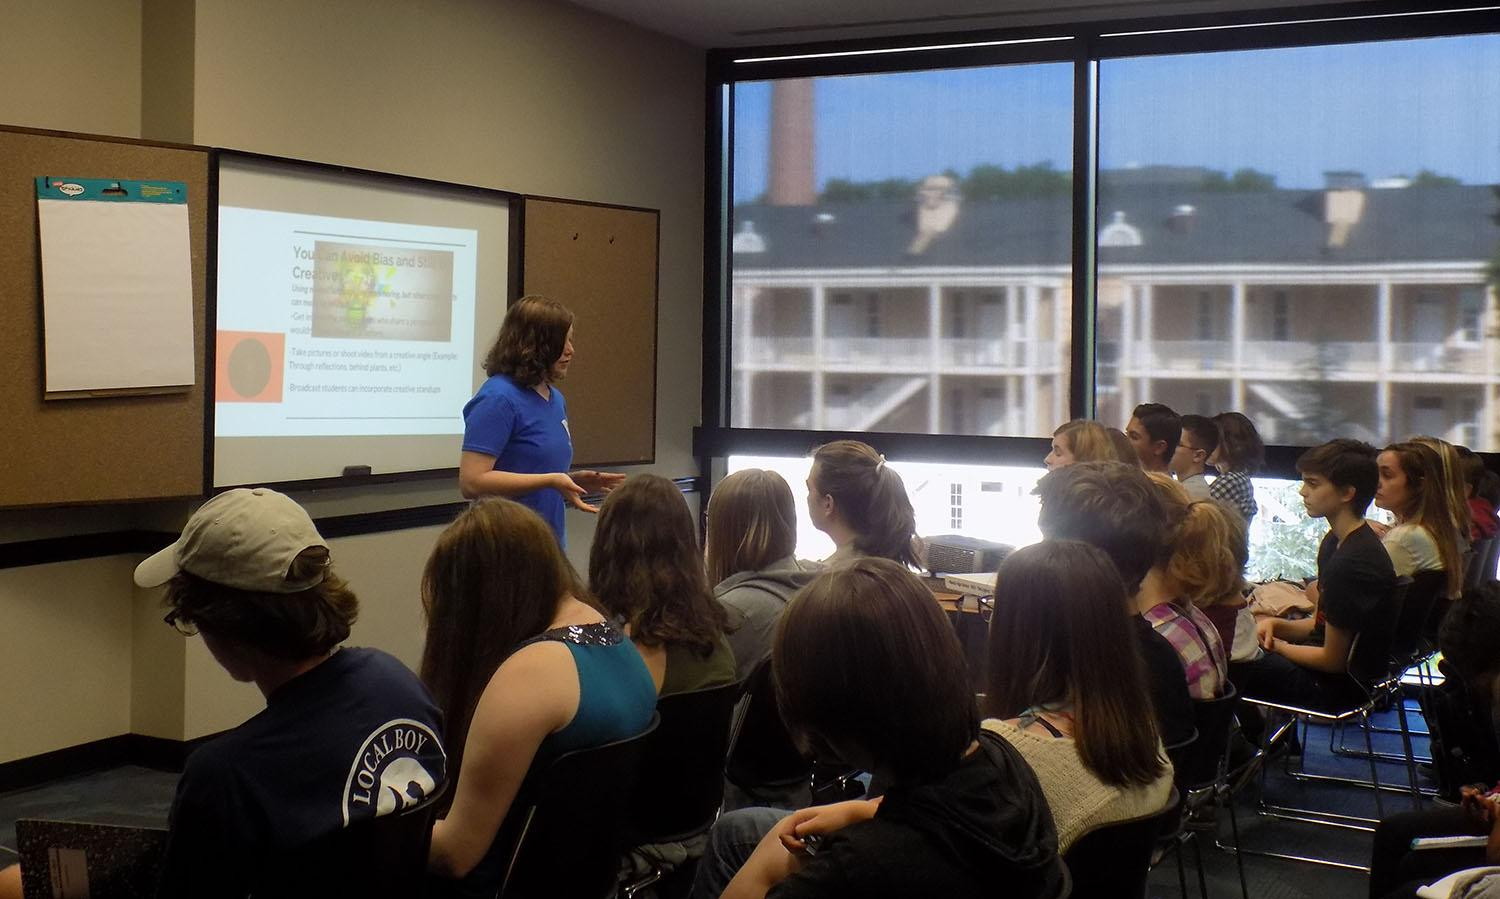 SCSPA Student President Ann Bailey of Summerville HS teaches a session on media bias. Photo courtesy of Henry Kerfoot.